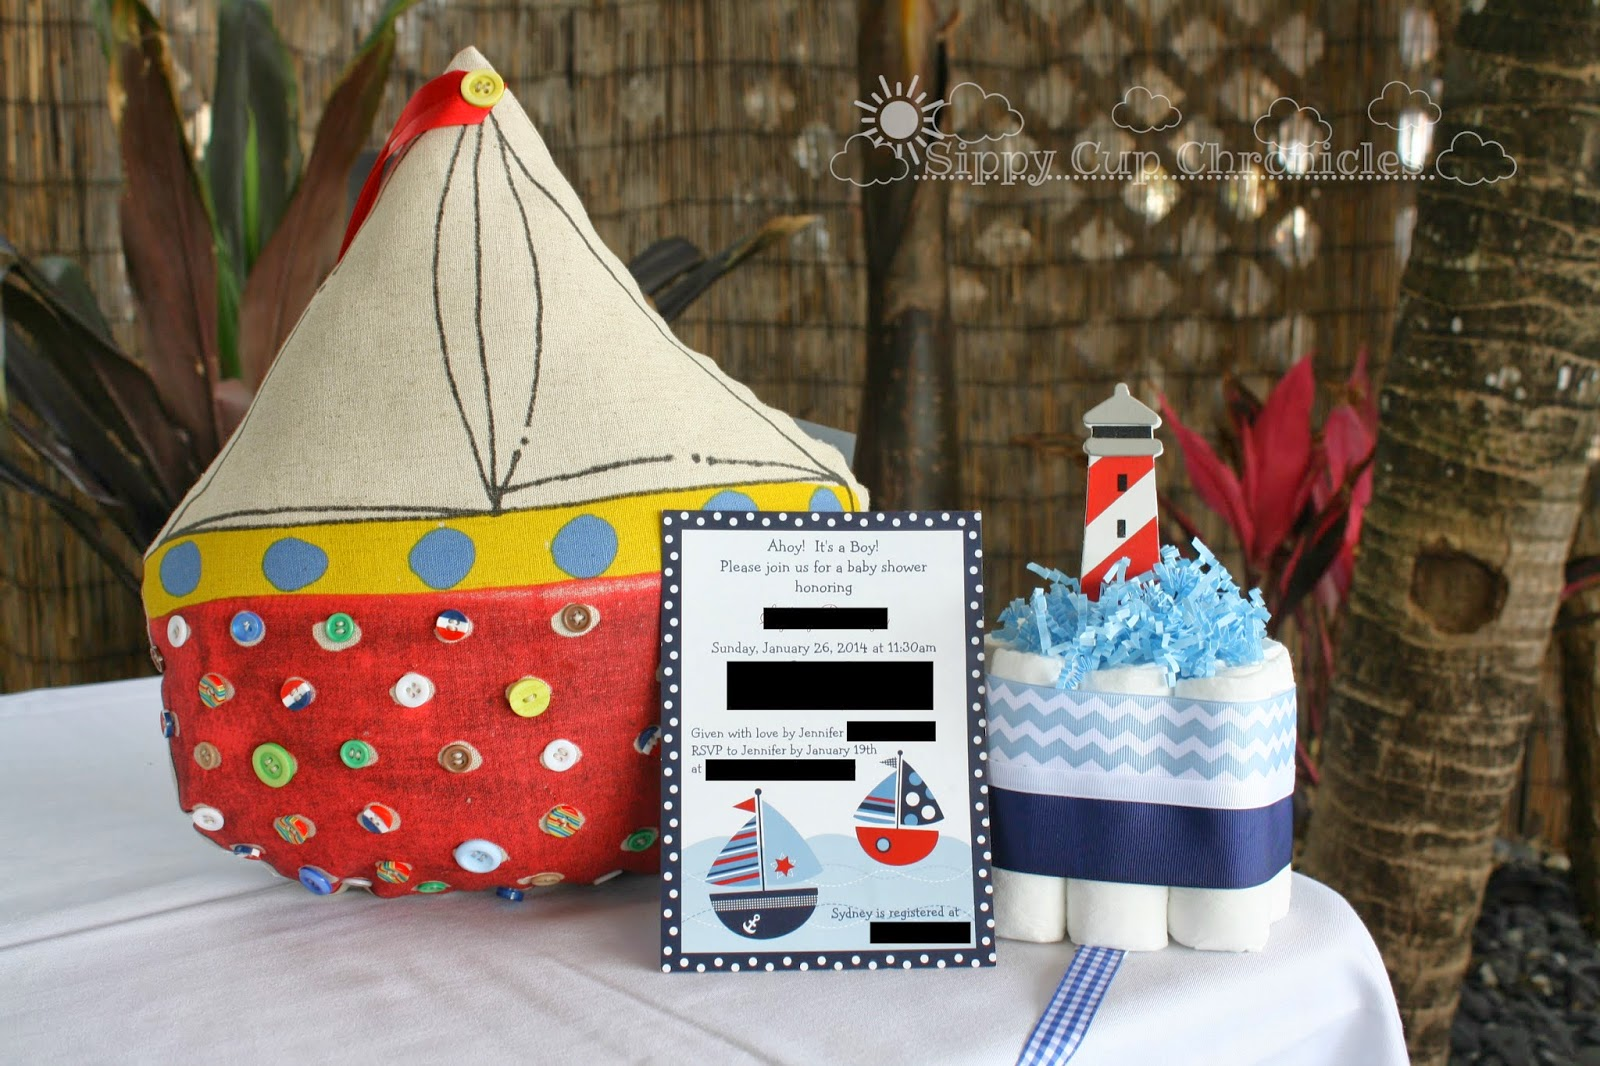 My Sister's Nautical Theme Baby Shower - Ahoy, It's A Boy!